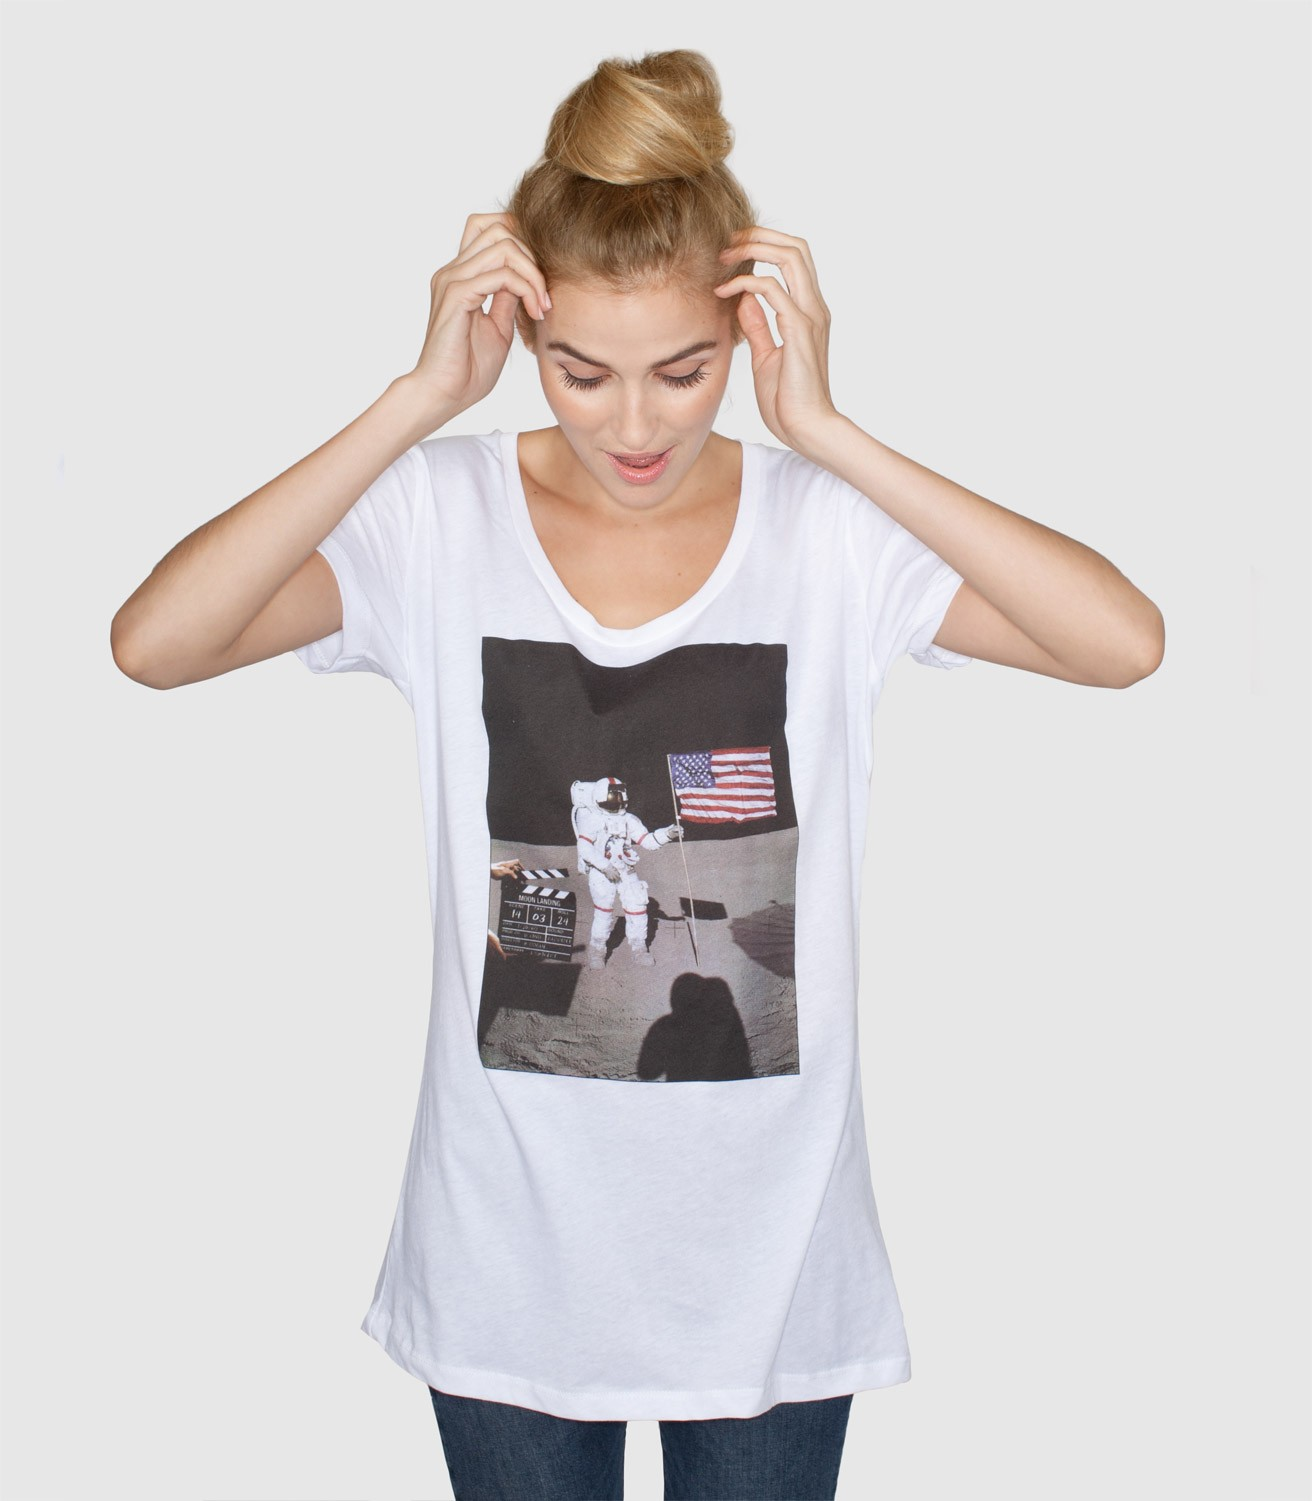 6233a9a8 Headline Shirts offers intelligently funny tees for men and women.Since  2014, life expectancy has dropped in the U.S. — with suicide, drug.